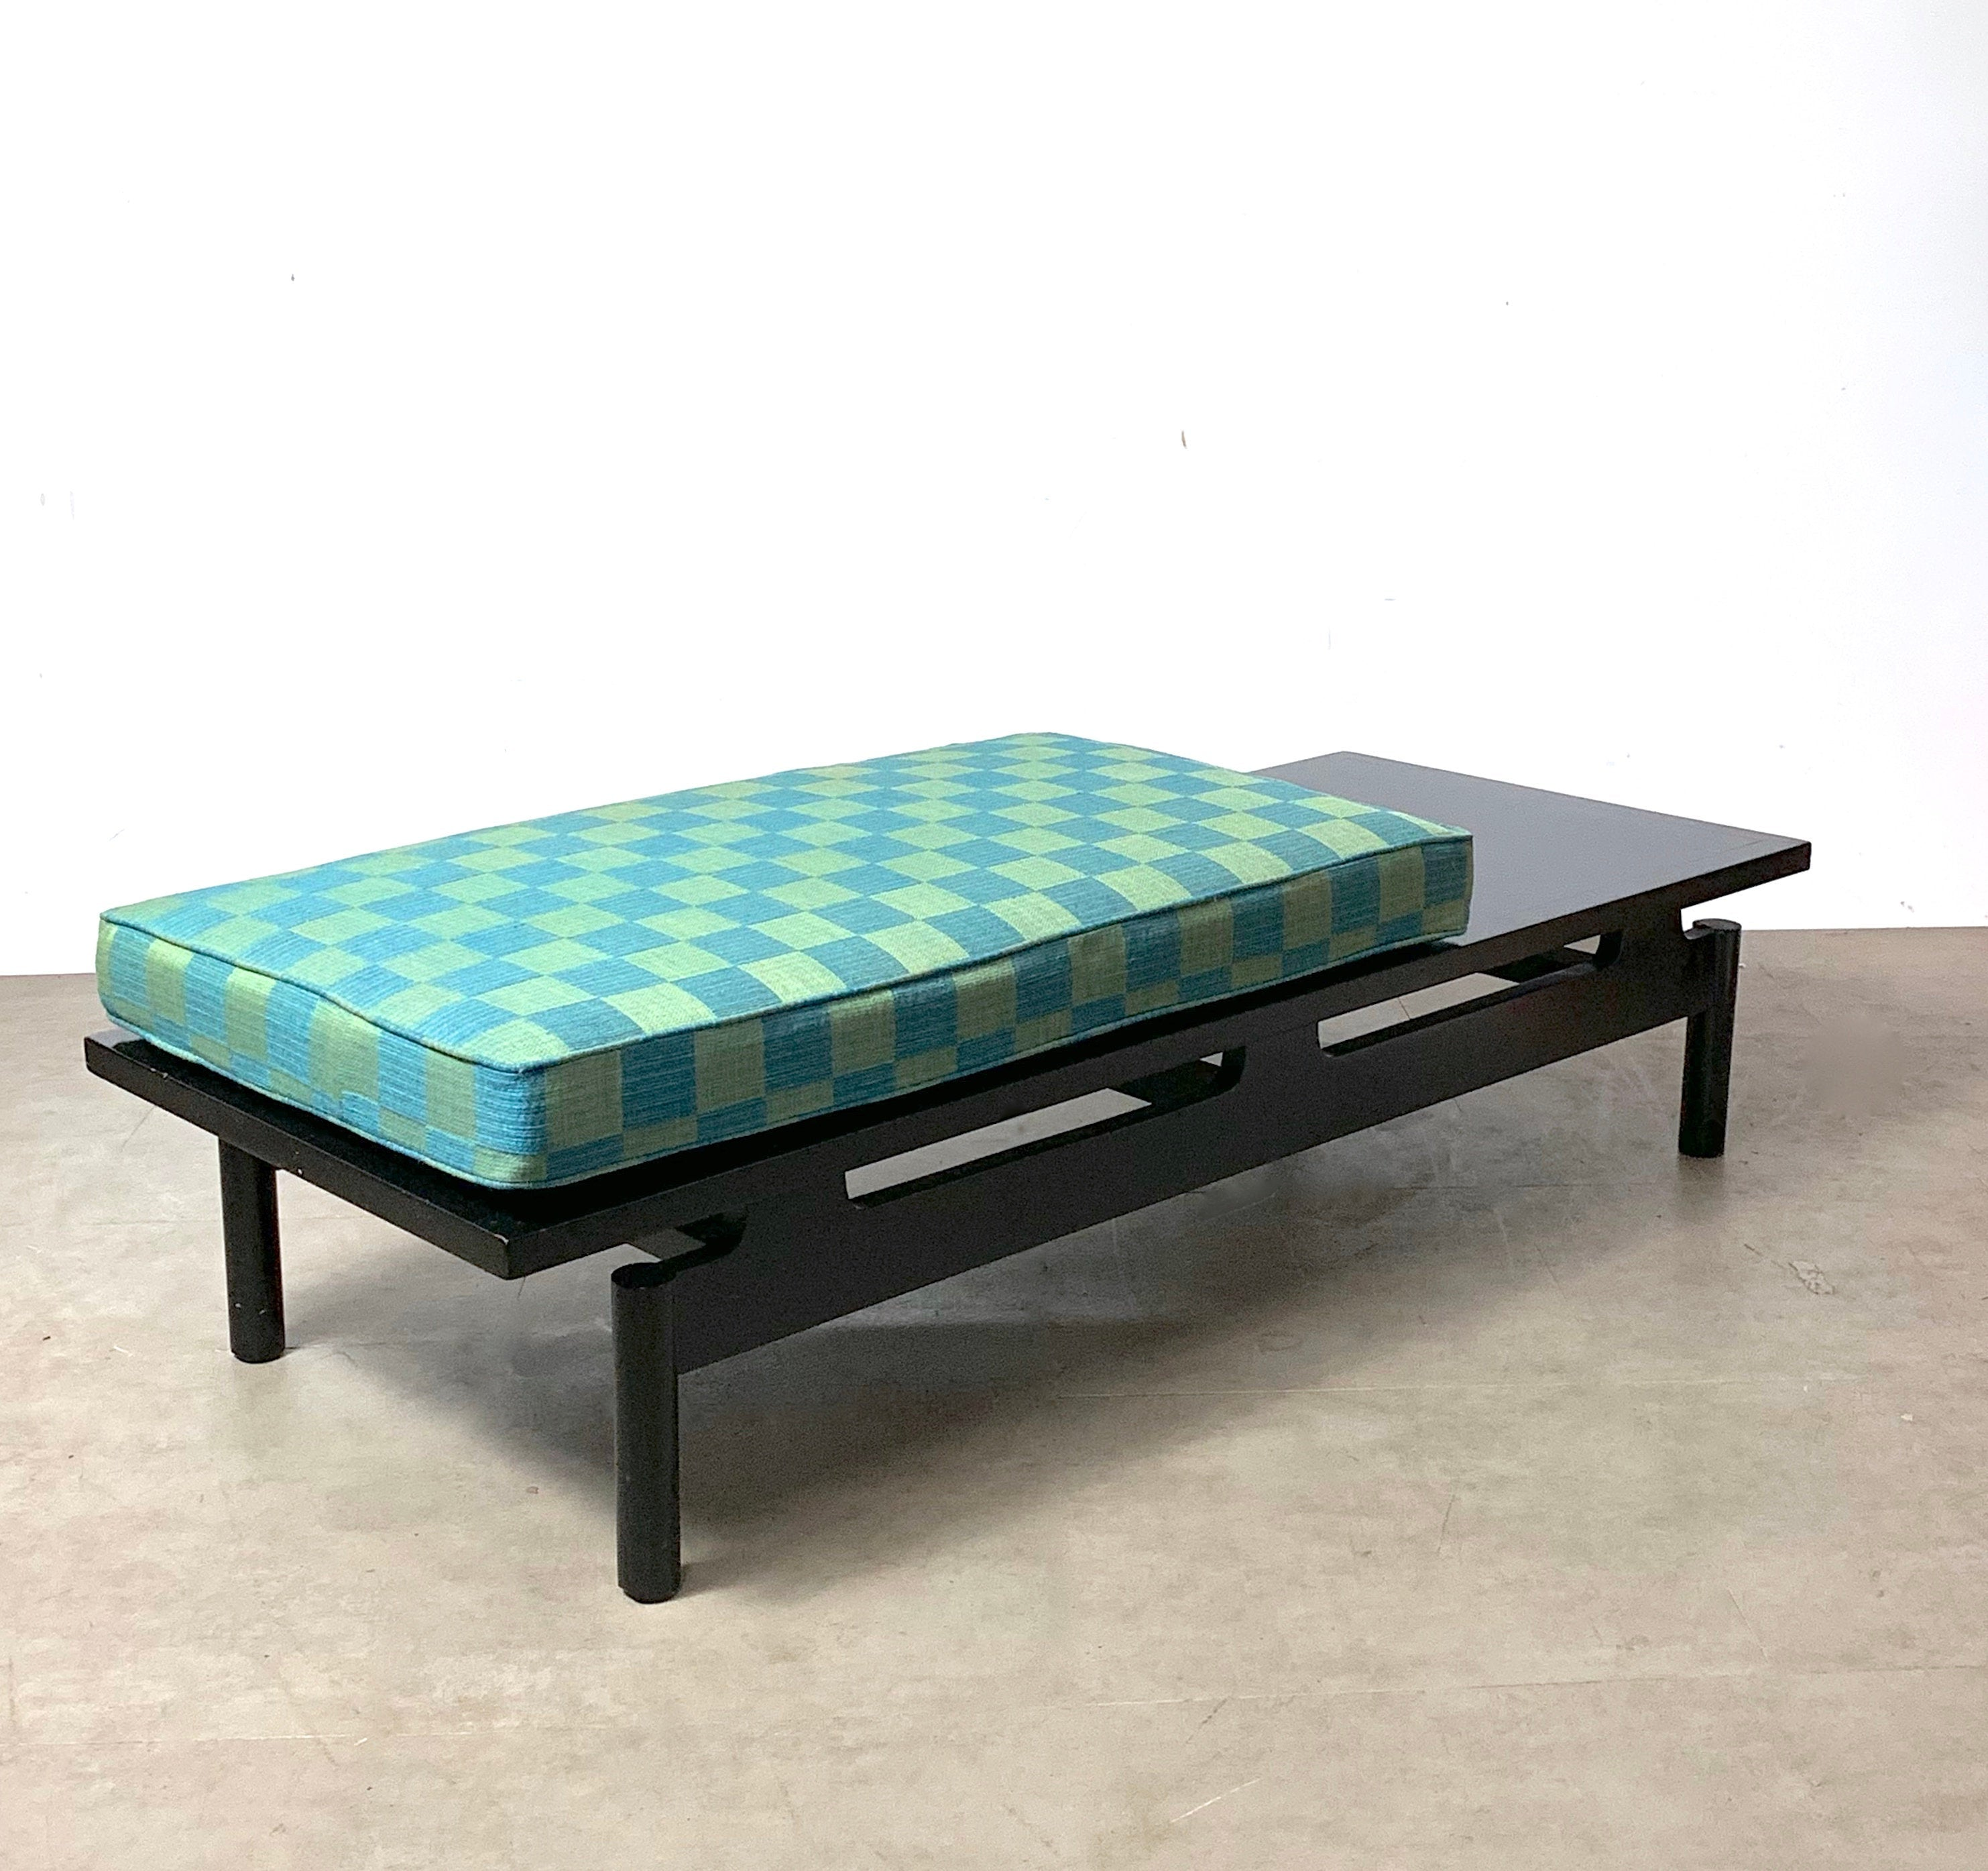 Modernist Ebonized Low Floating Bench with Original 1950s Upholstered Seat Cushion